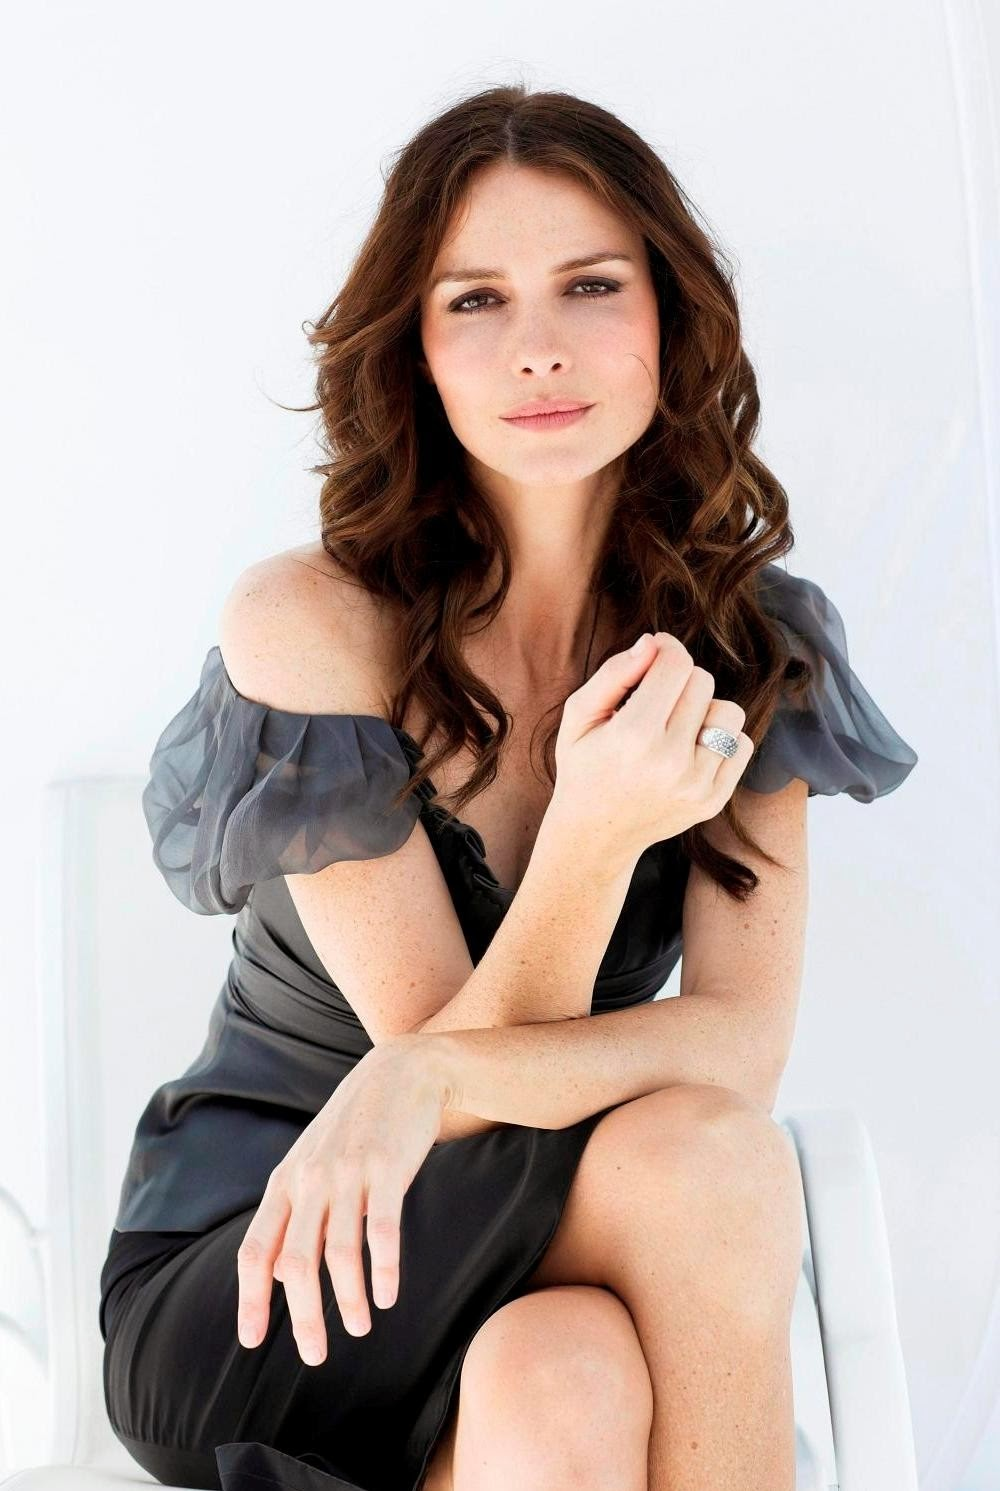 Actress Saffron Burrows Hot Photos